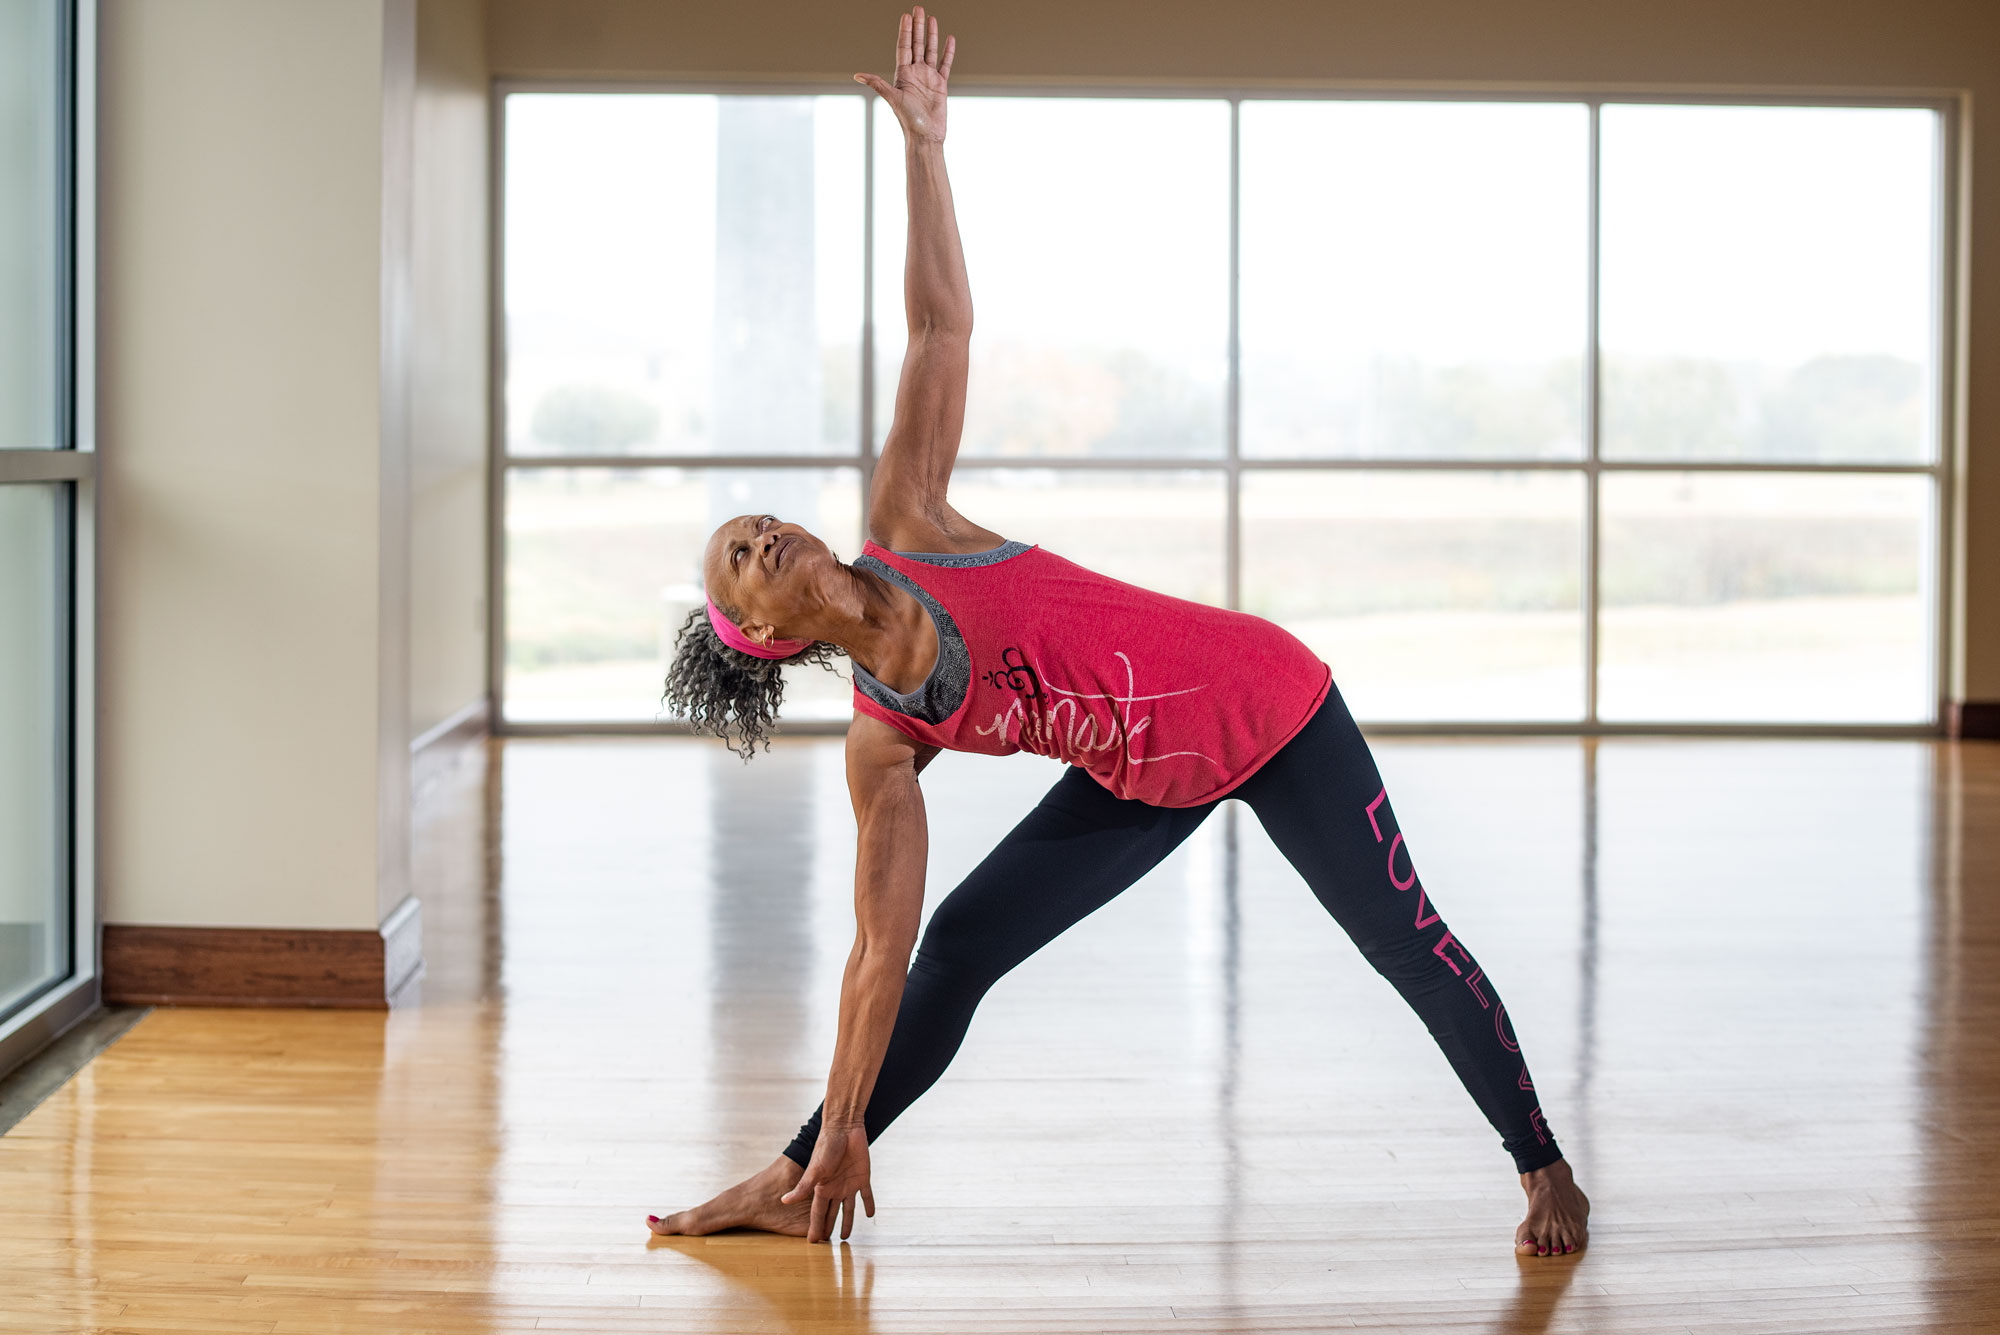 Patricia Ebaire does an extended triangle pose during her yoga class.